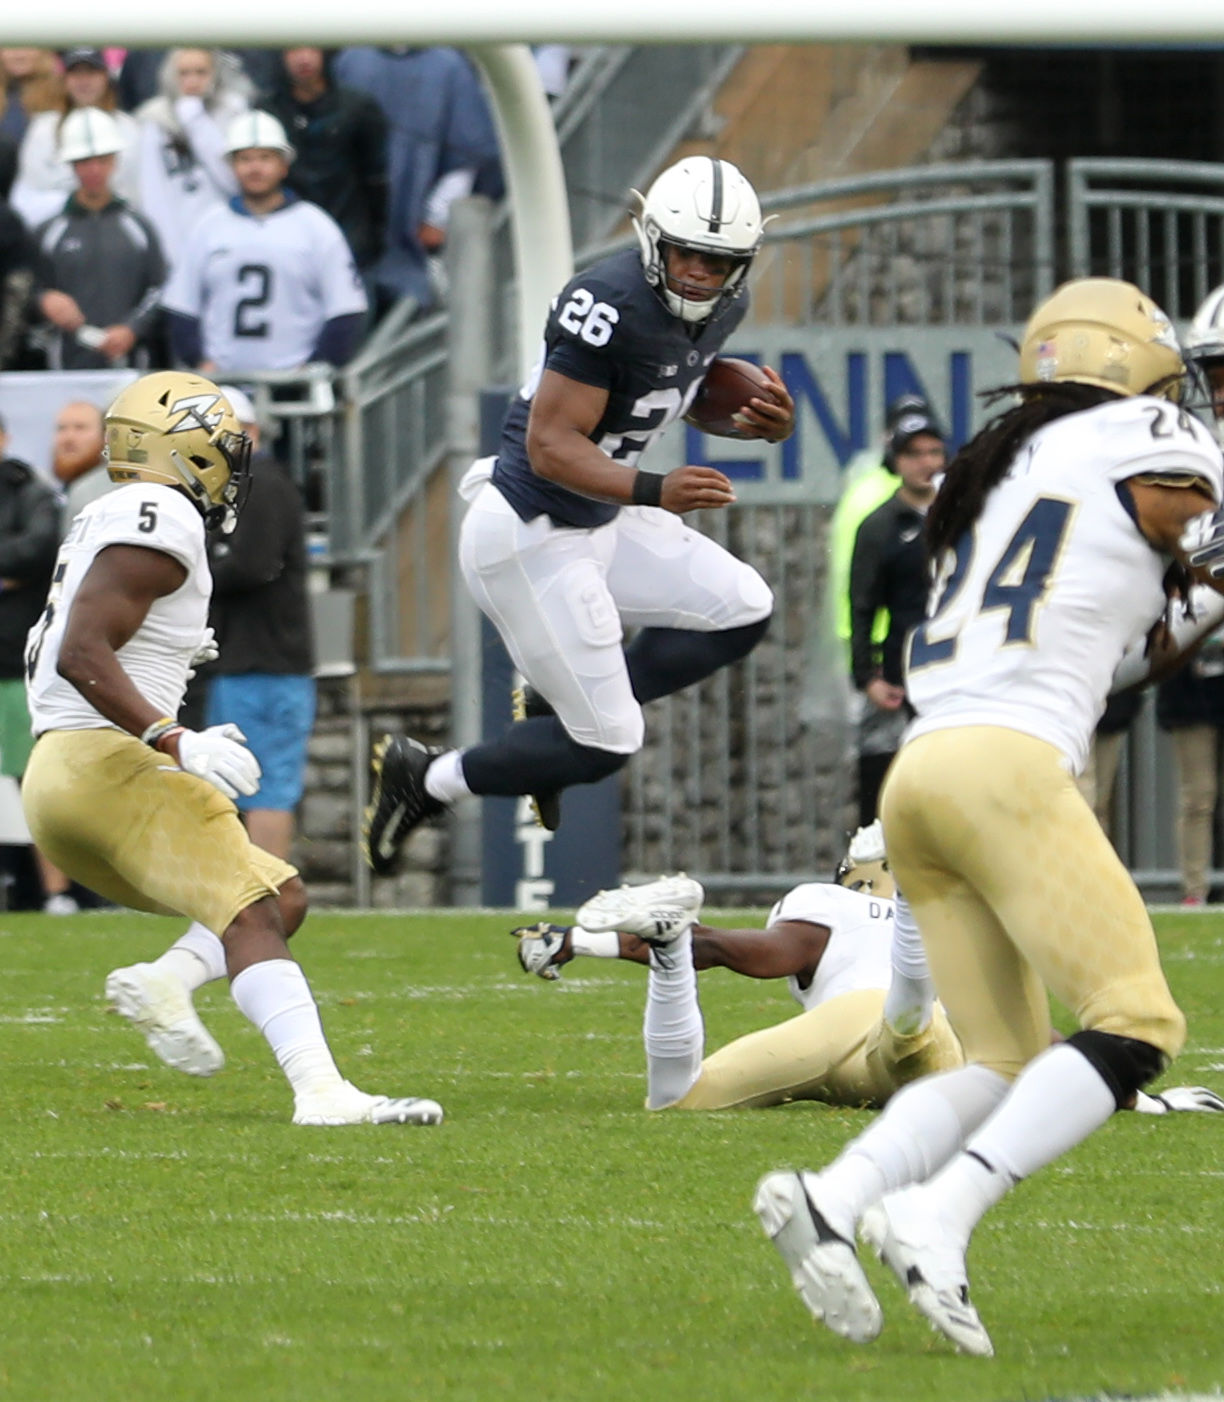 Penn State notebook: Offense lives up to preseason hype